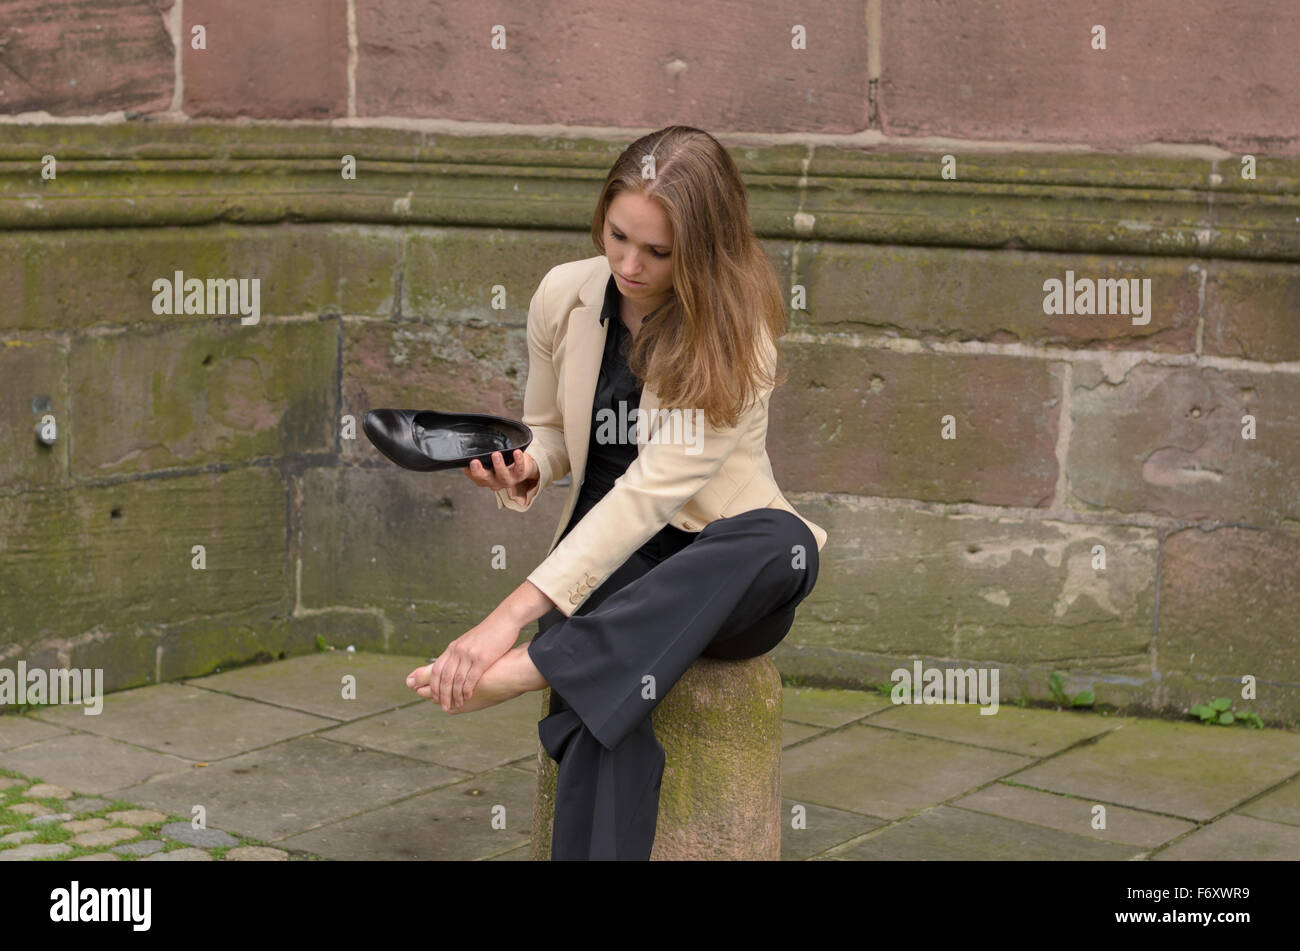 Stylish young woman with aching feet pausing in town to sit on a cement bollard as she removes her high heels to - Stock Image